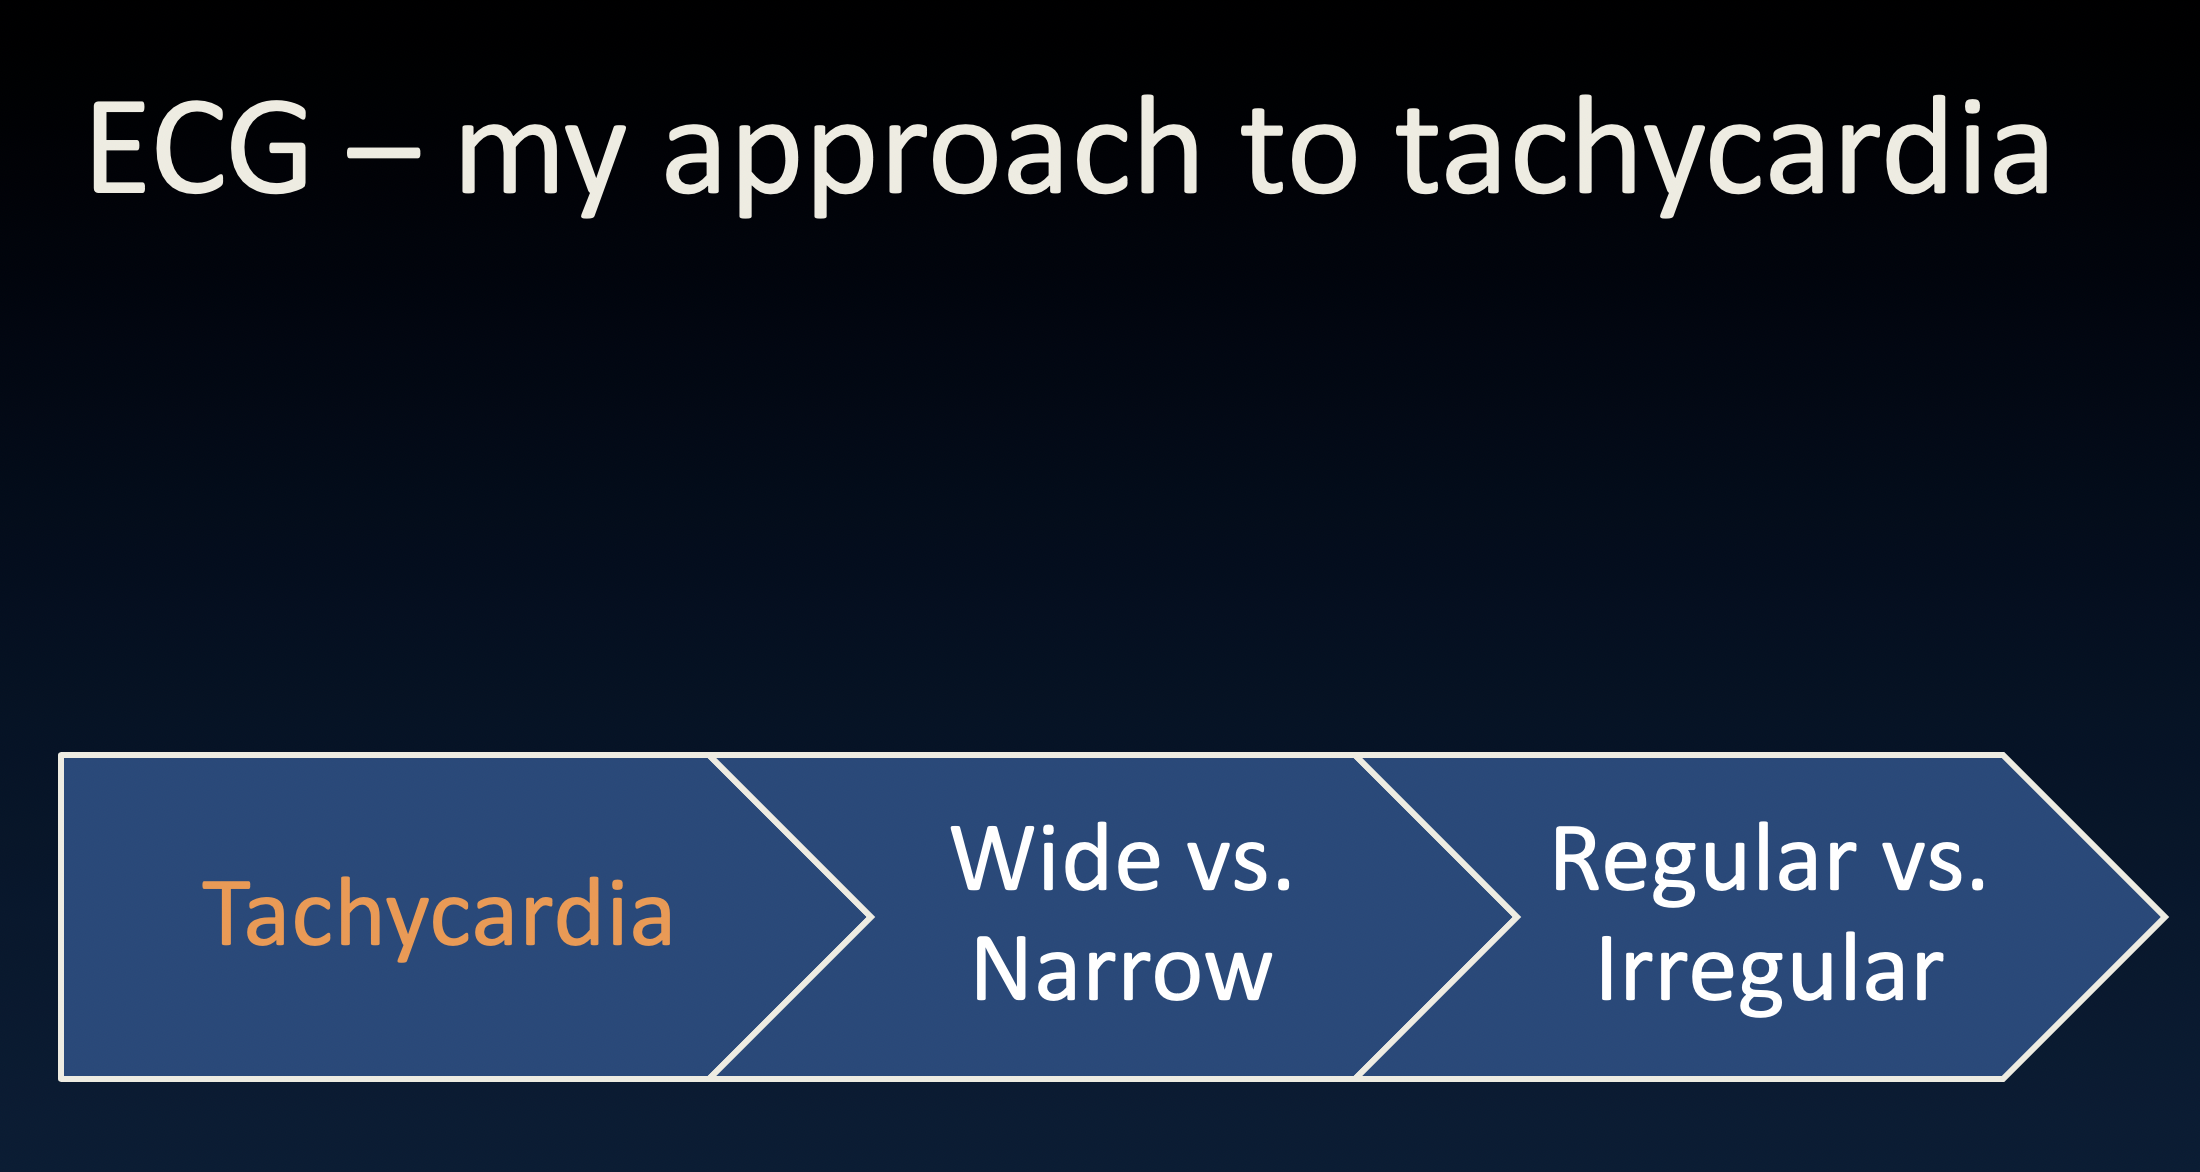 Cardiology Institute - ECG - Tachycardia Approach.png